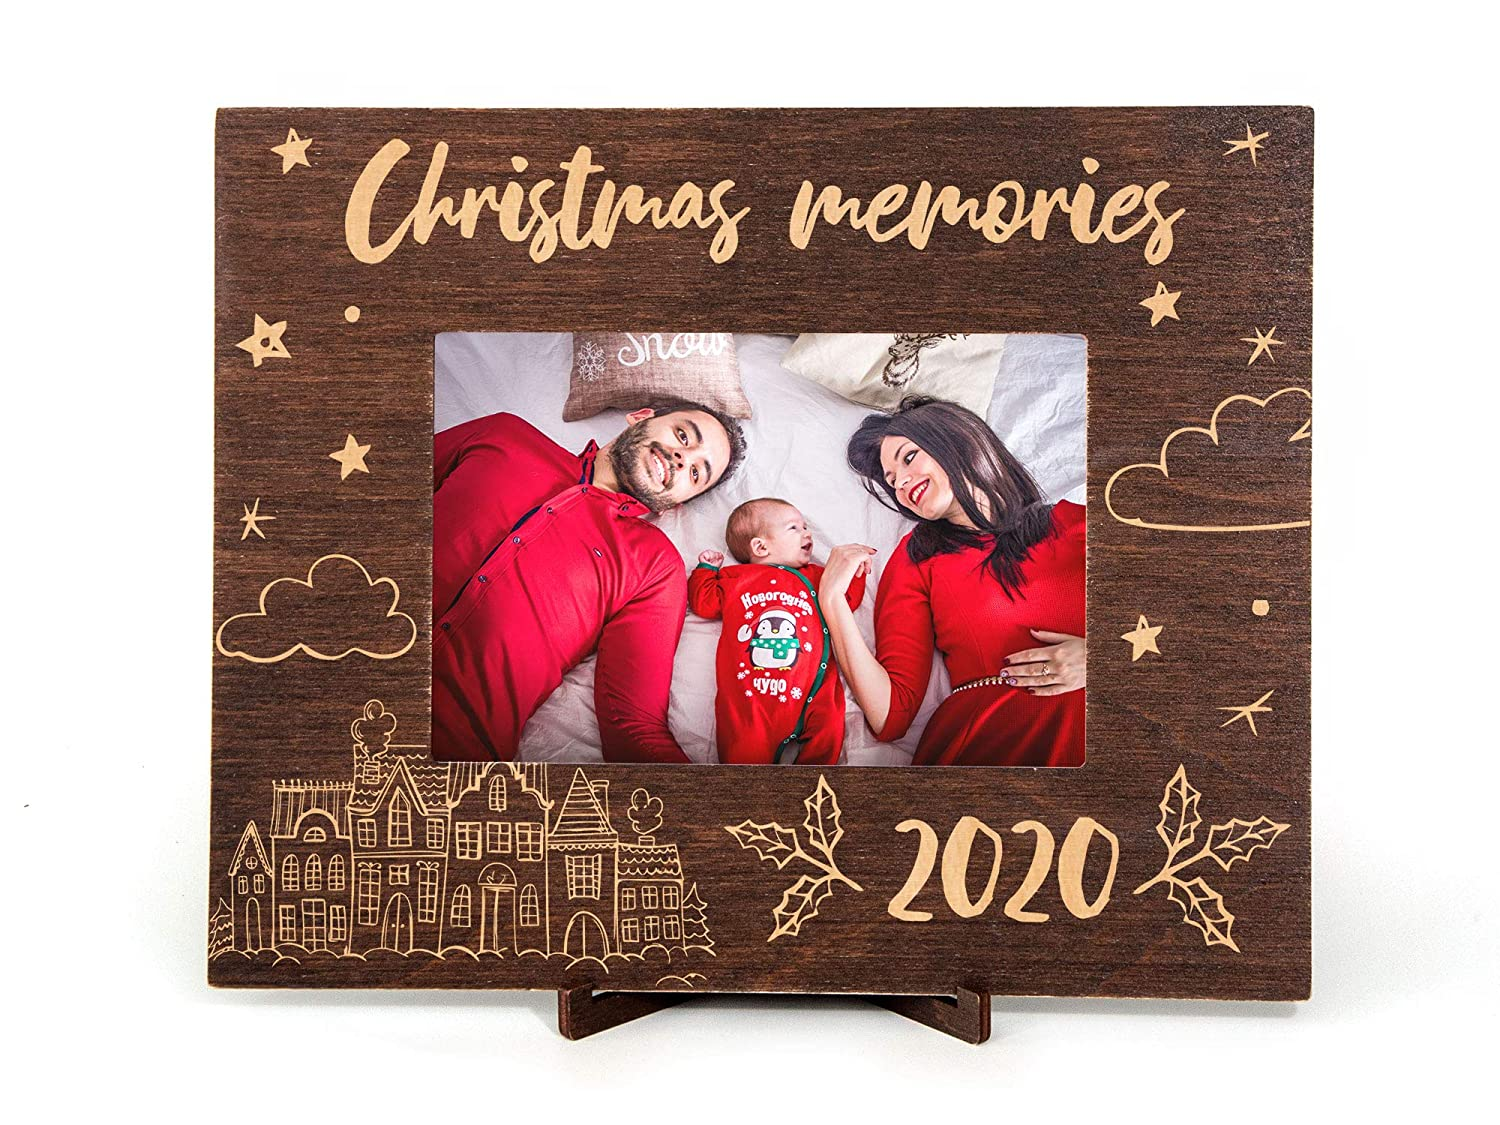 2020 4x6 Christmas Frame Amazon.com: Christmas Photo Frame Wood Picture Frame Christmas